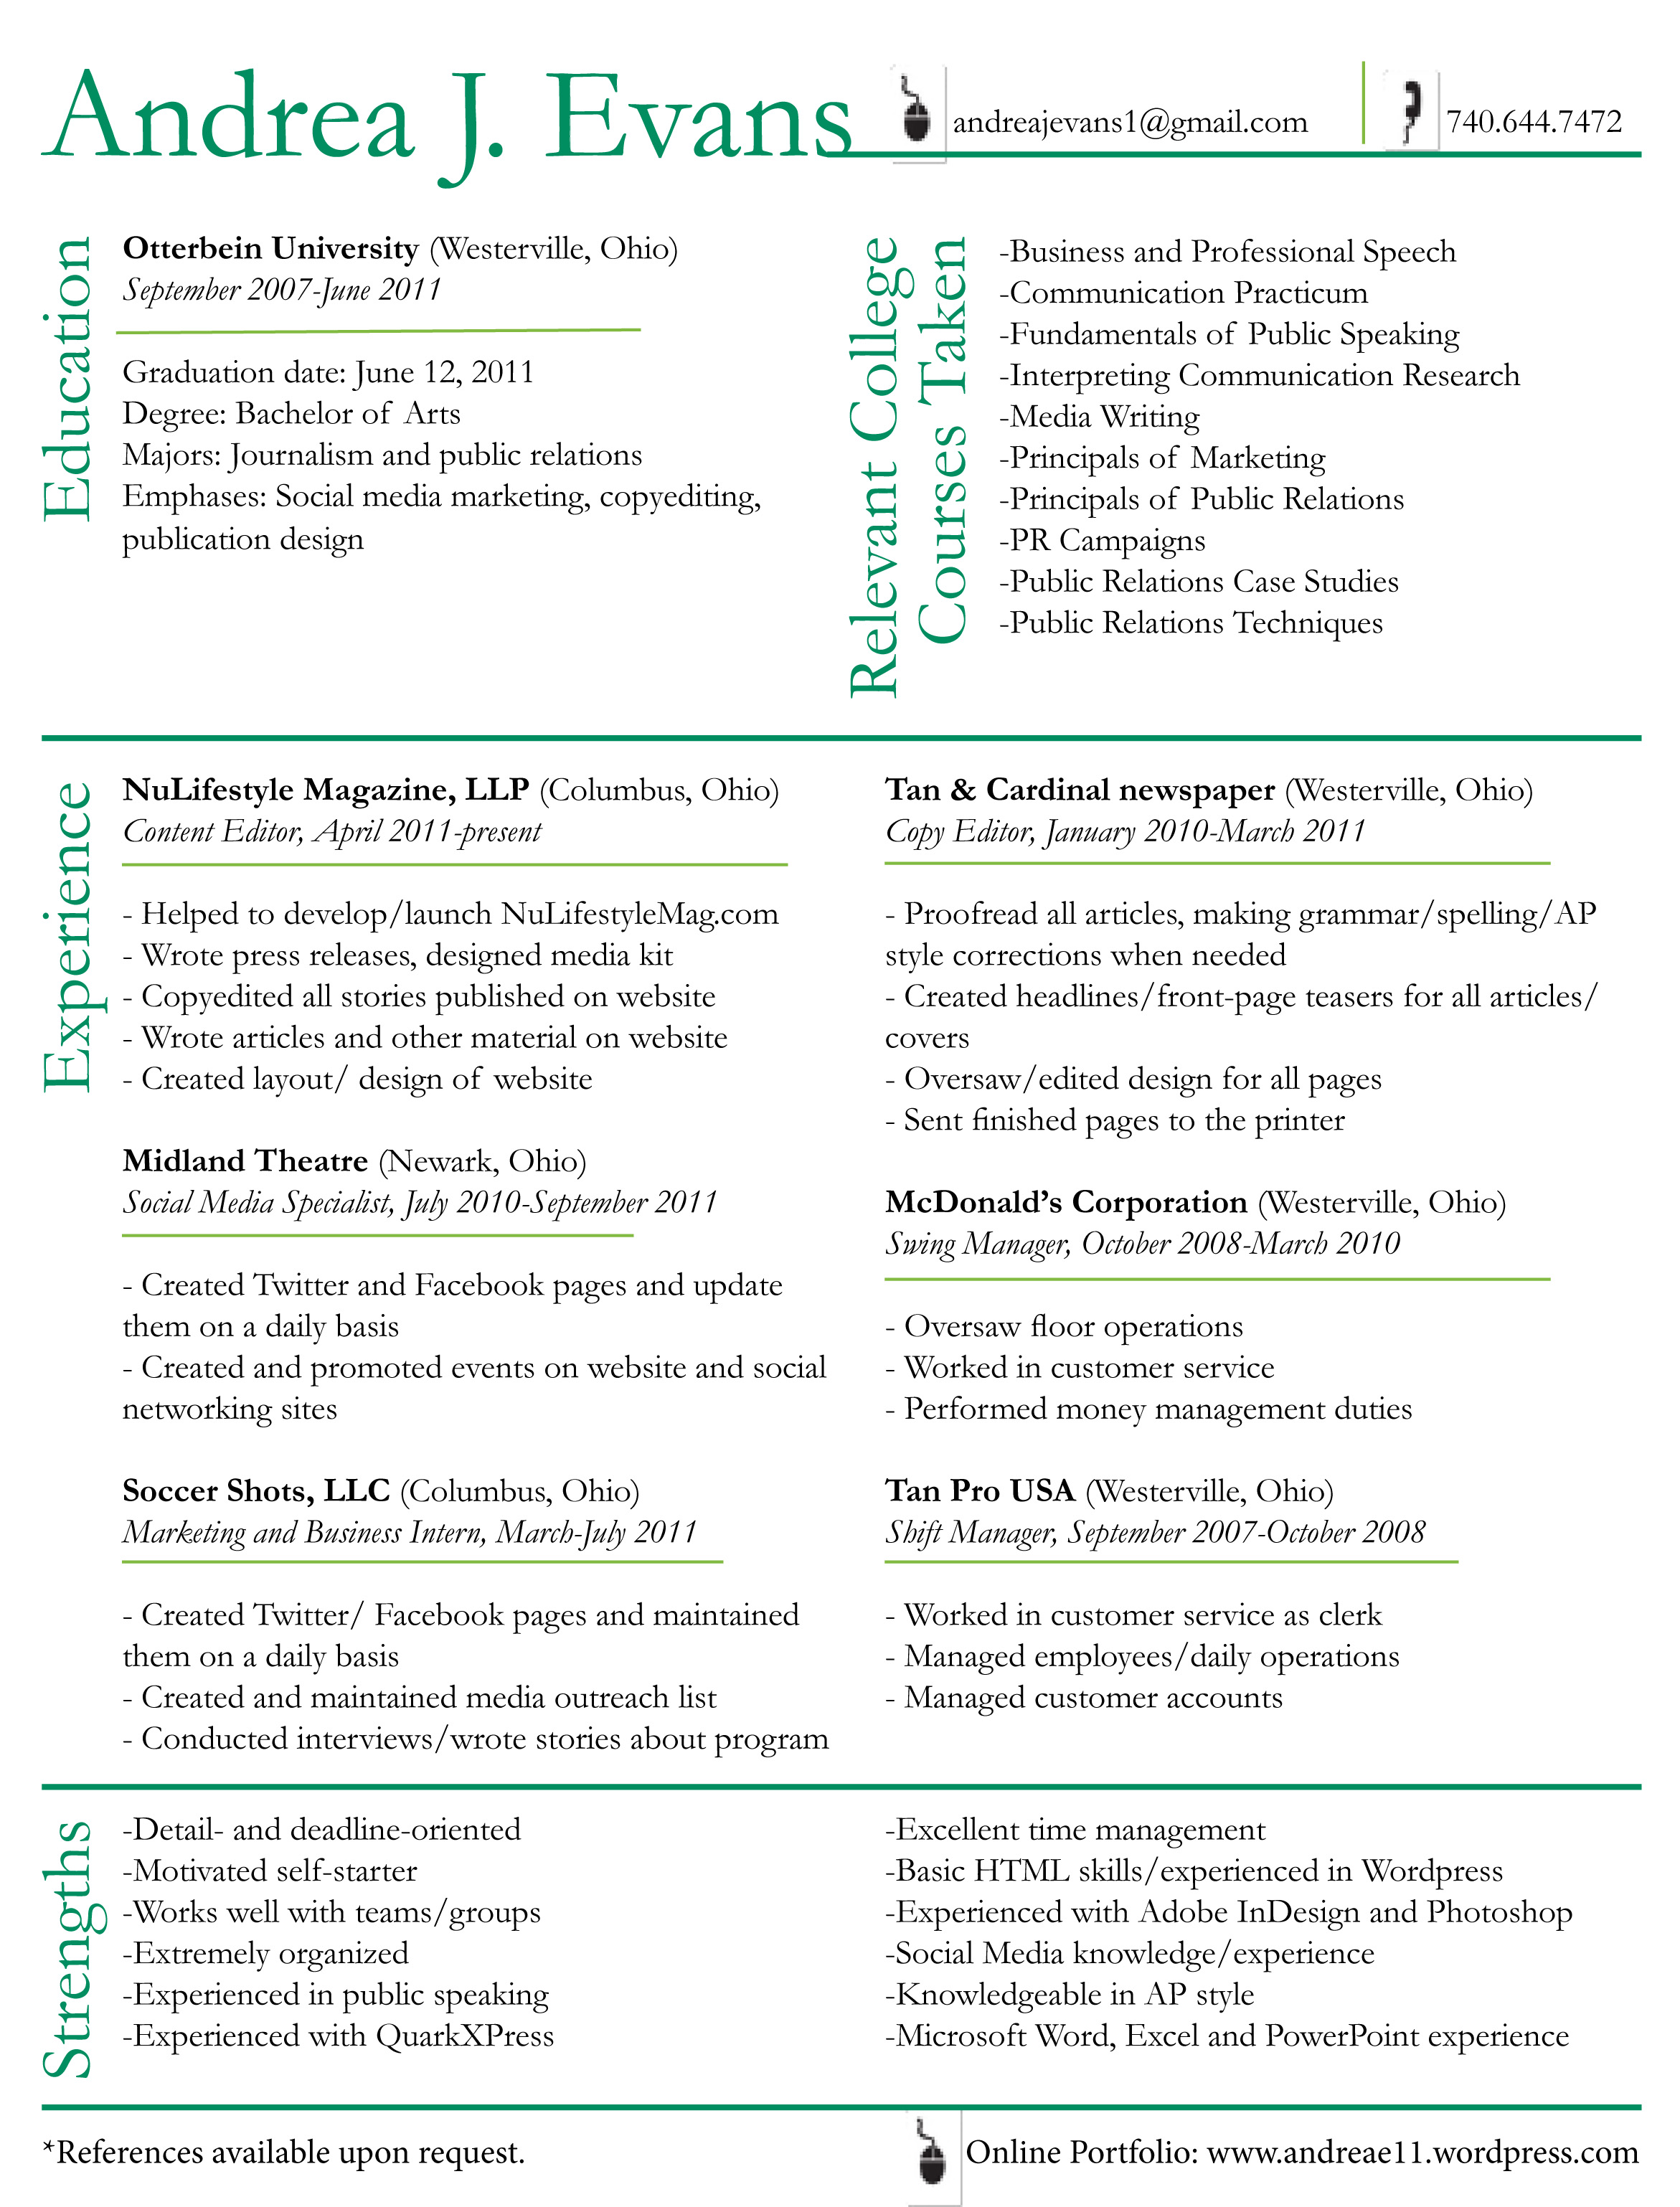 Sample Resumes Sample Resume Writing Example Free R233;sum233; Andrea Evans The World Of An Aspiring Professional